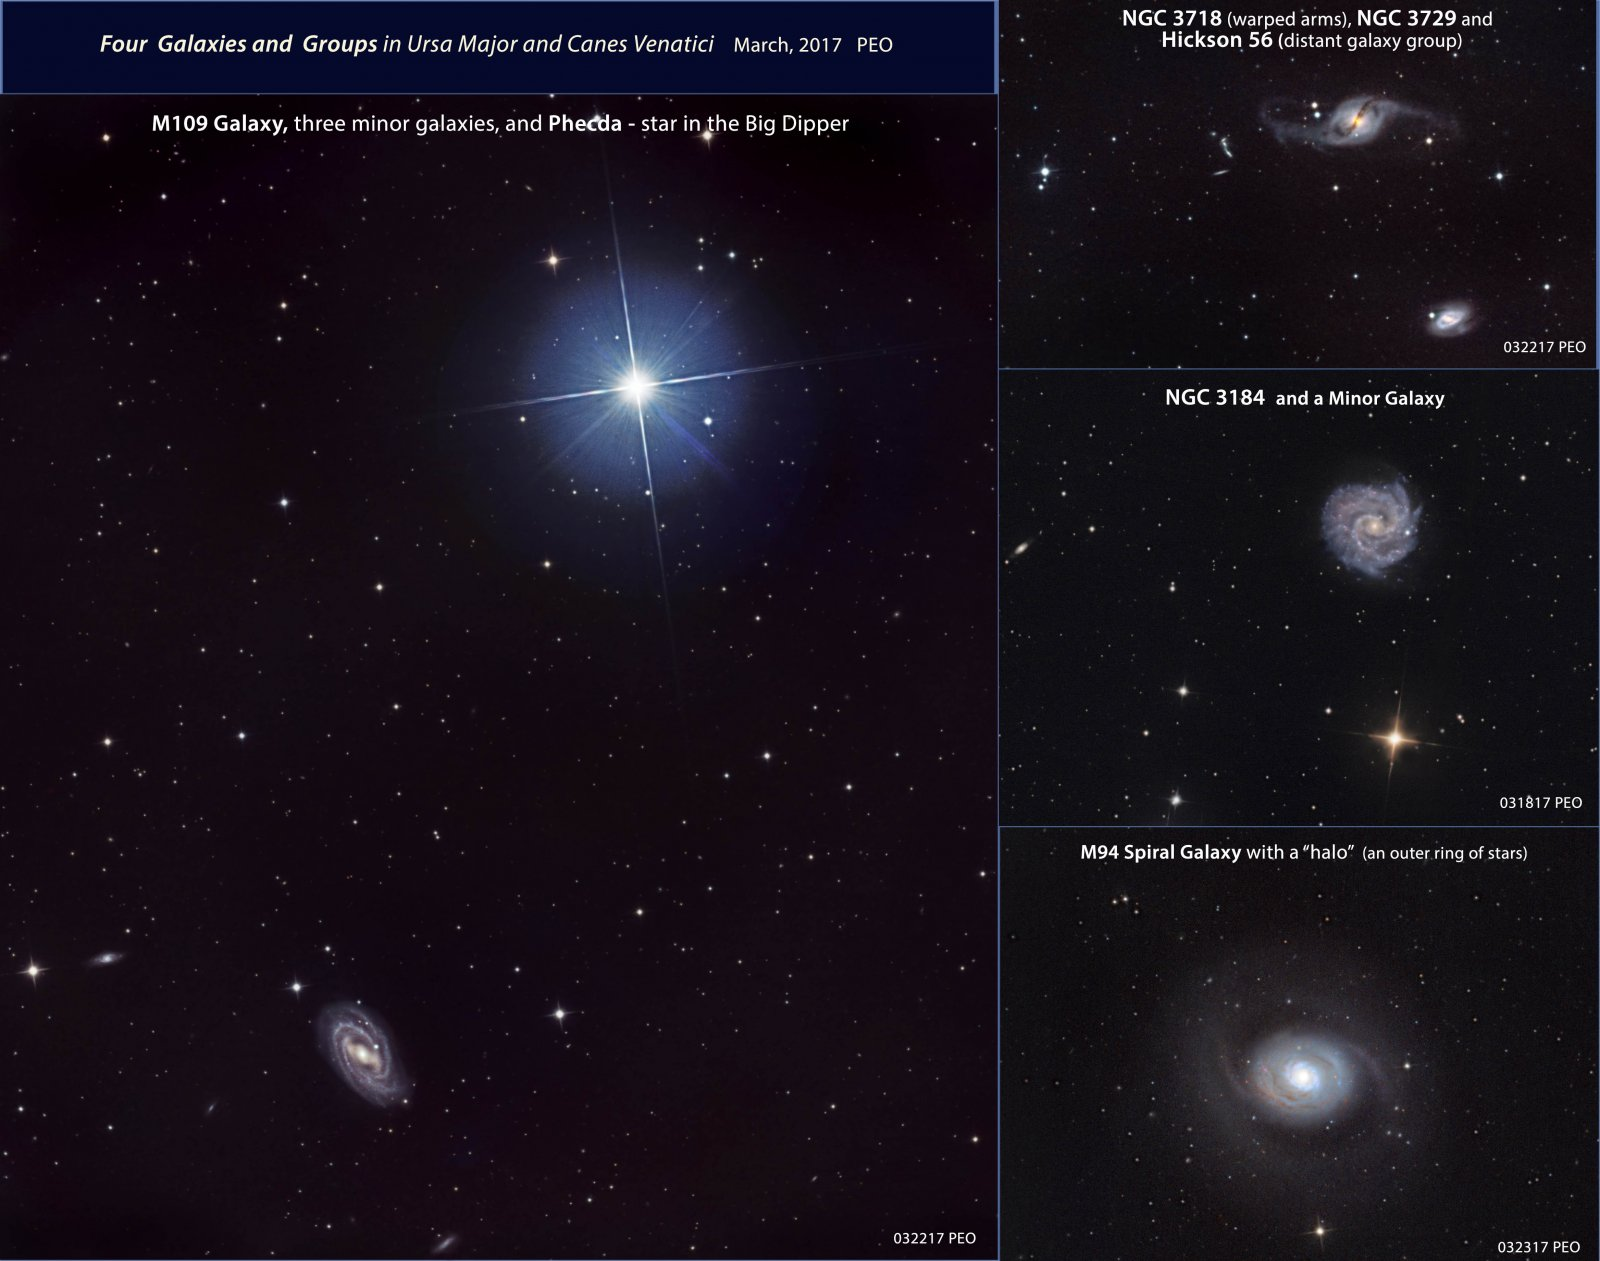 4 Galaxies in Ursa Major